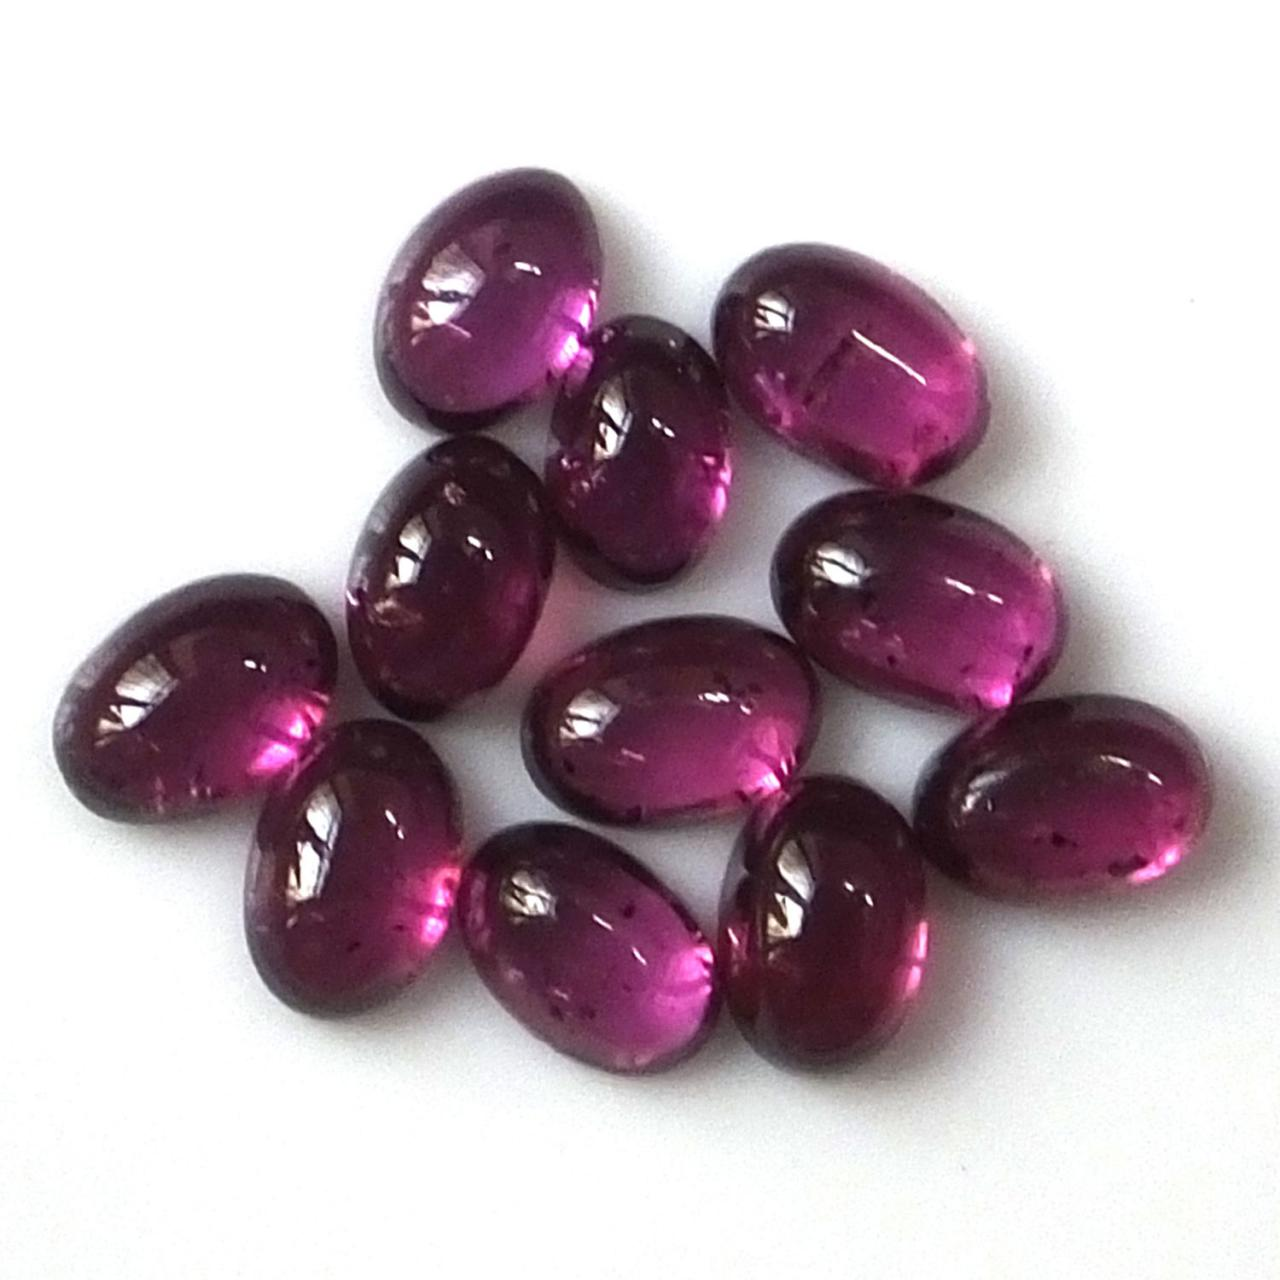 8x6mm Natural Rhodolite Garnet Cabochon Oval 50 Pieces Lot Red Pink Color Top Quality Loose Gemstone